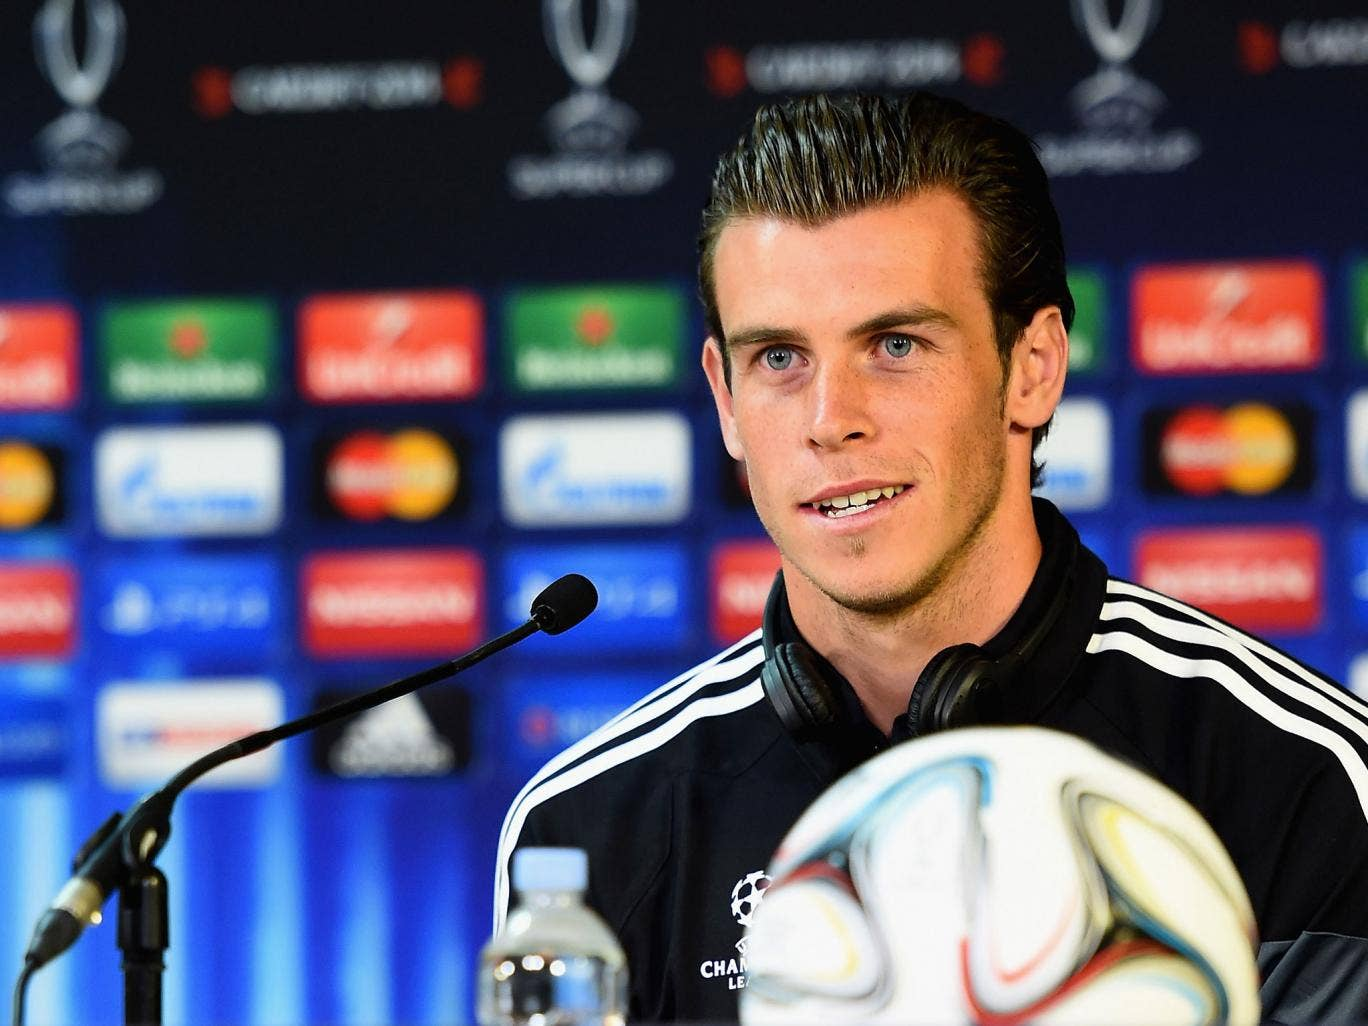 Gareth Bale is set to be the fan-favourite when the Uefa Super Cup takes place in Cardiff